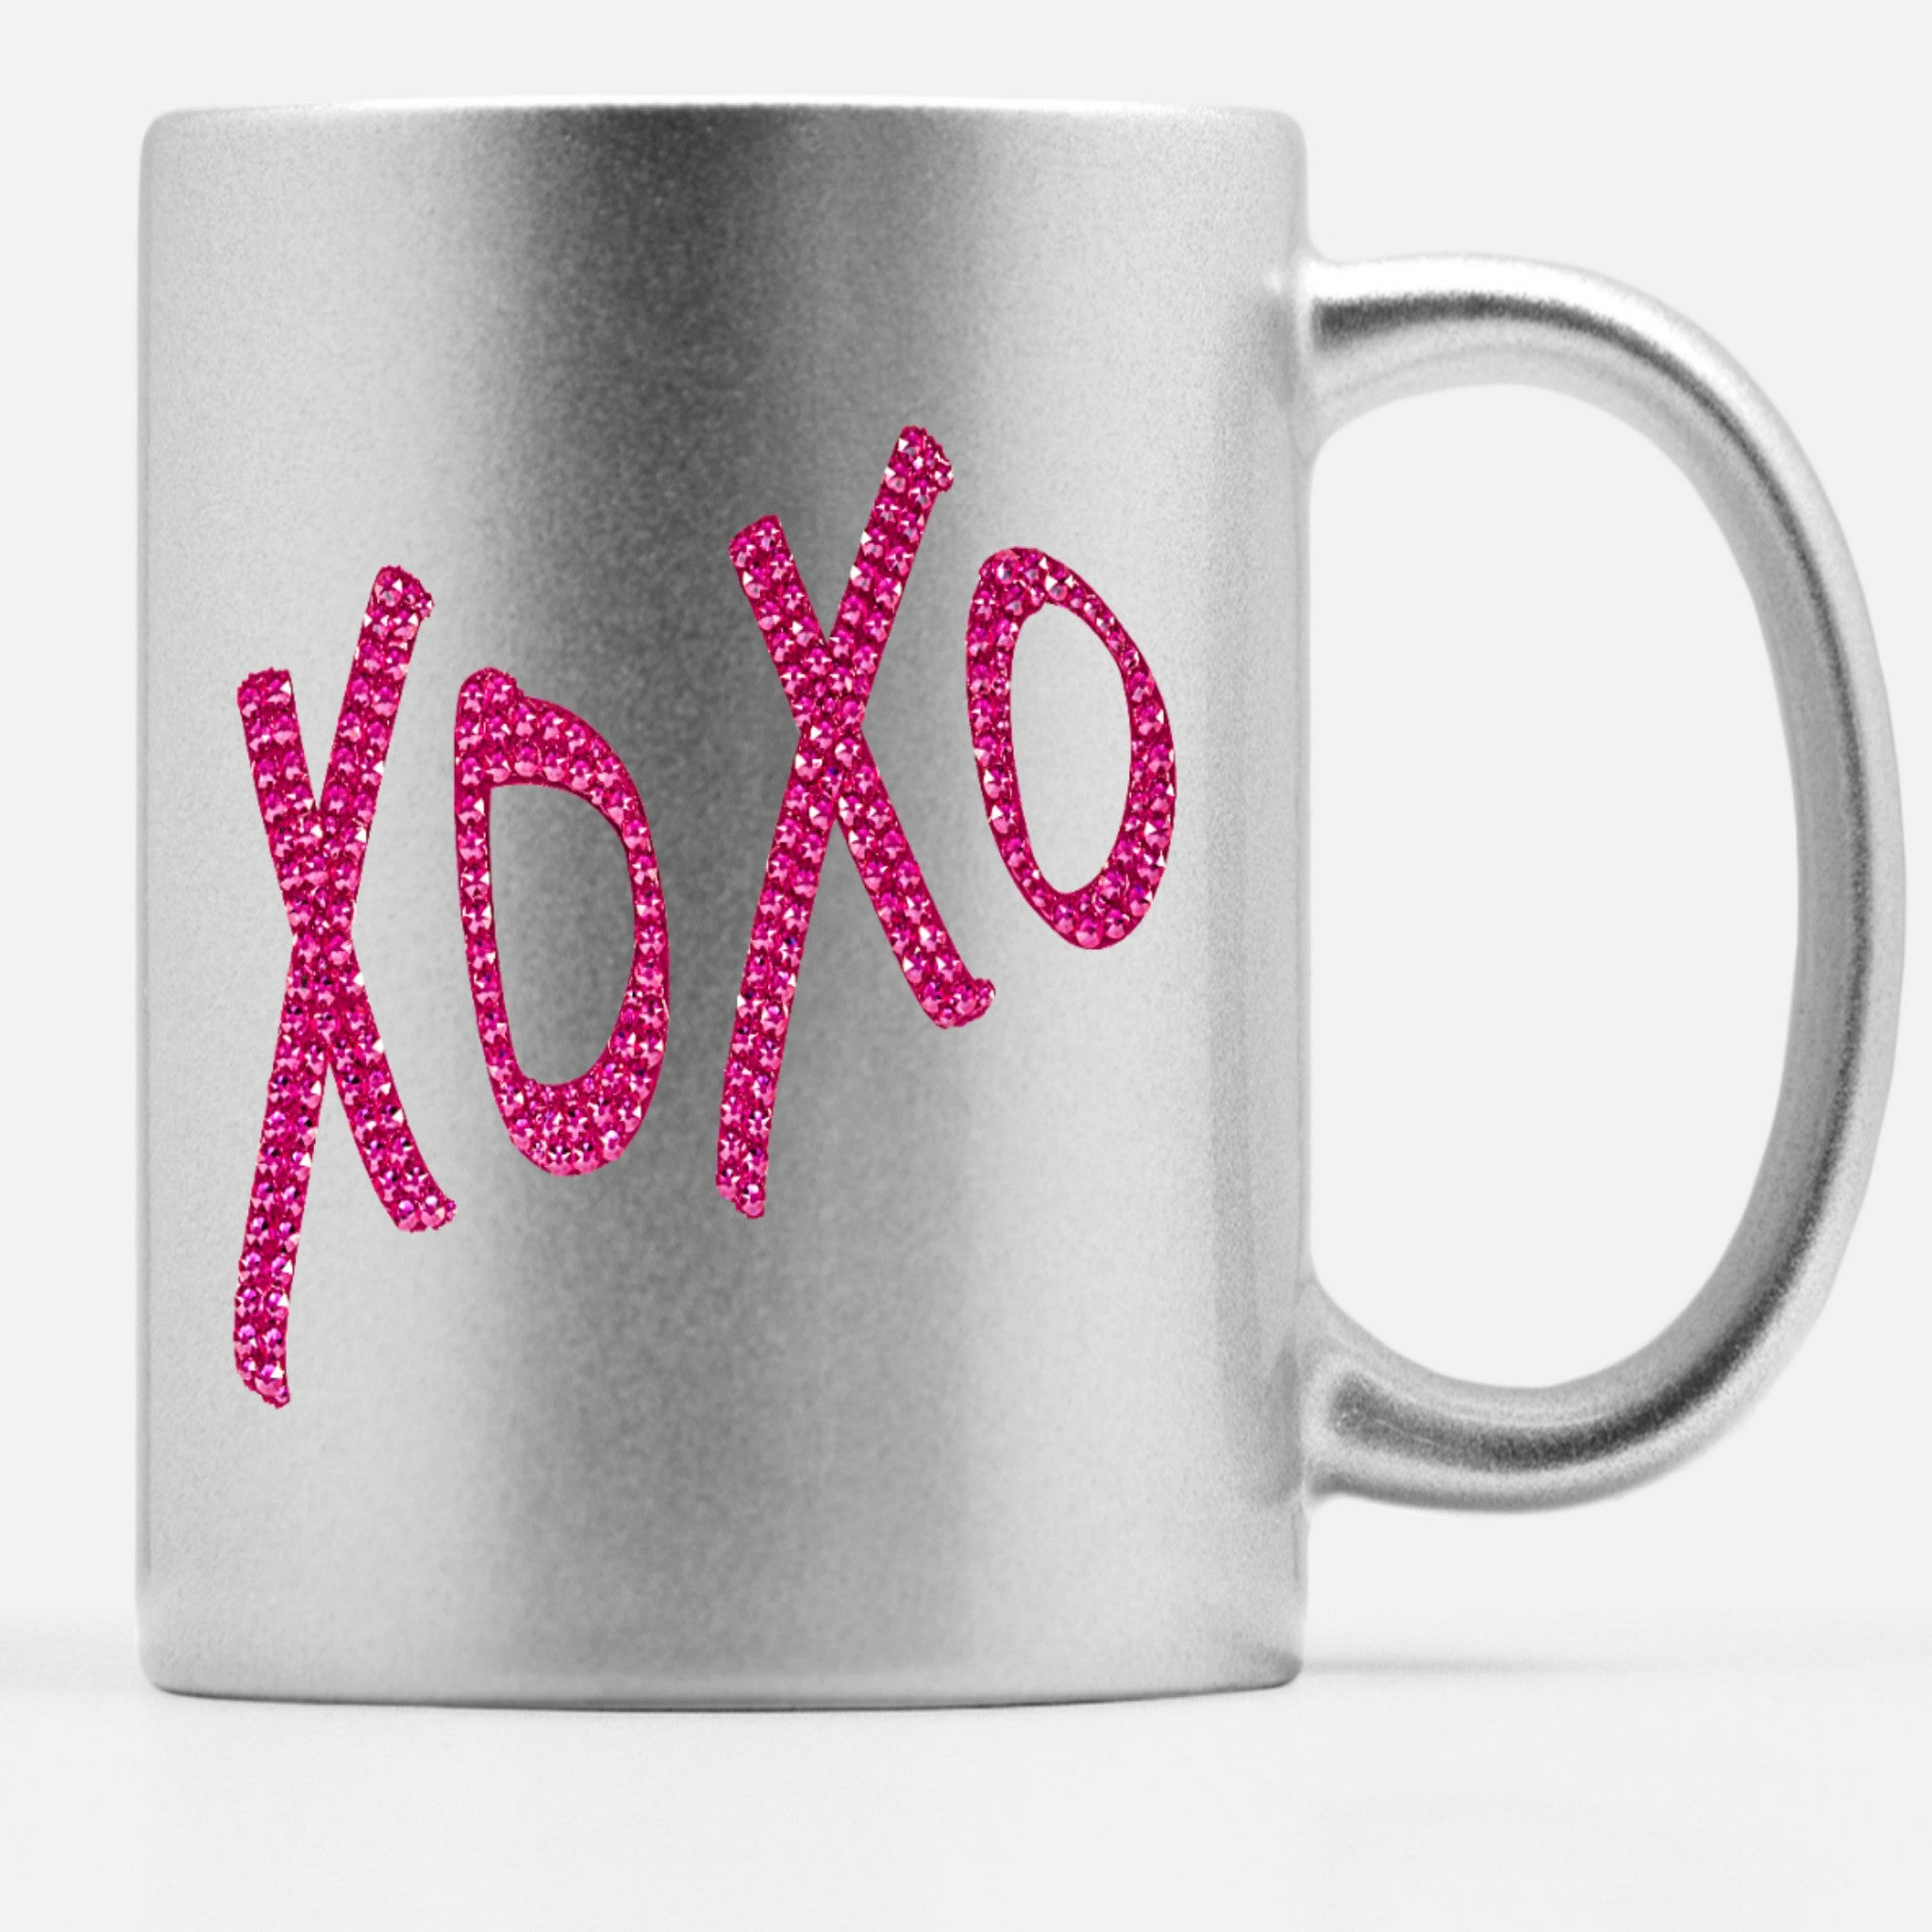 Coffee Mug - XOXO - CRYSTAHHLED